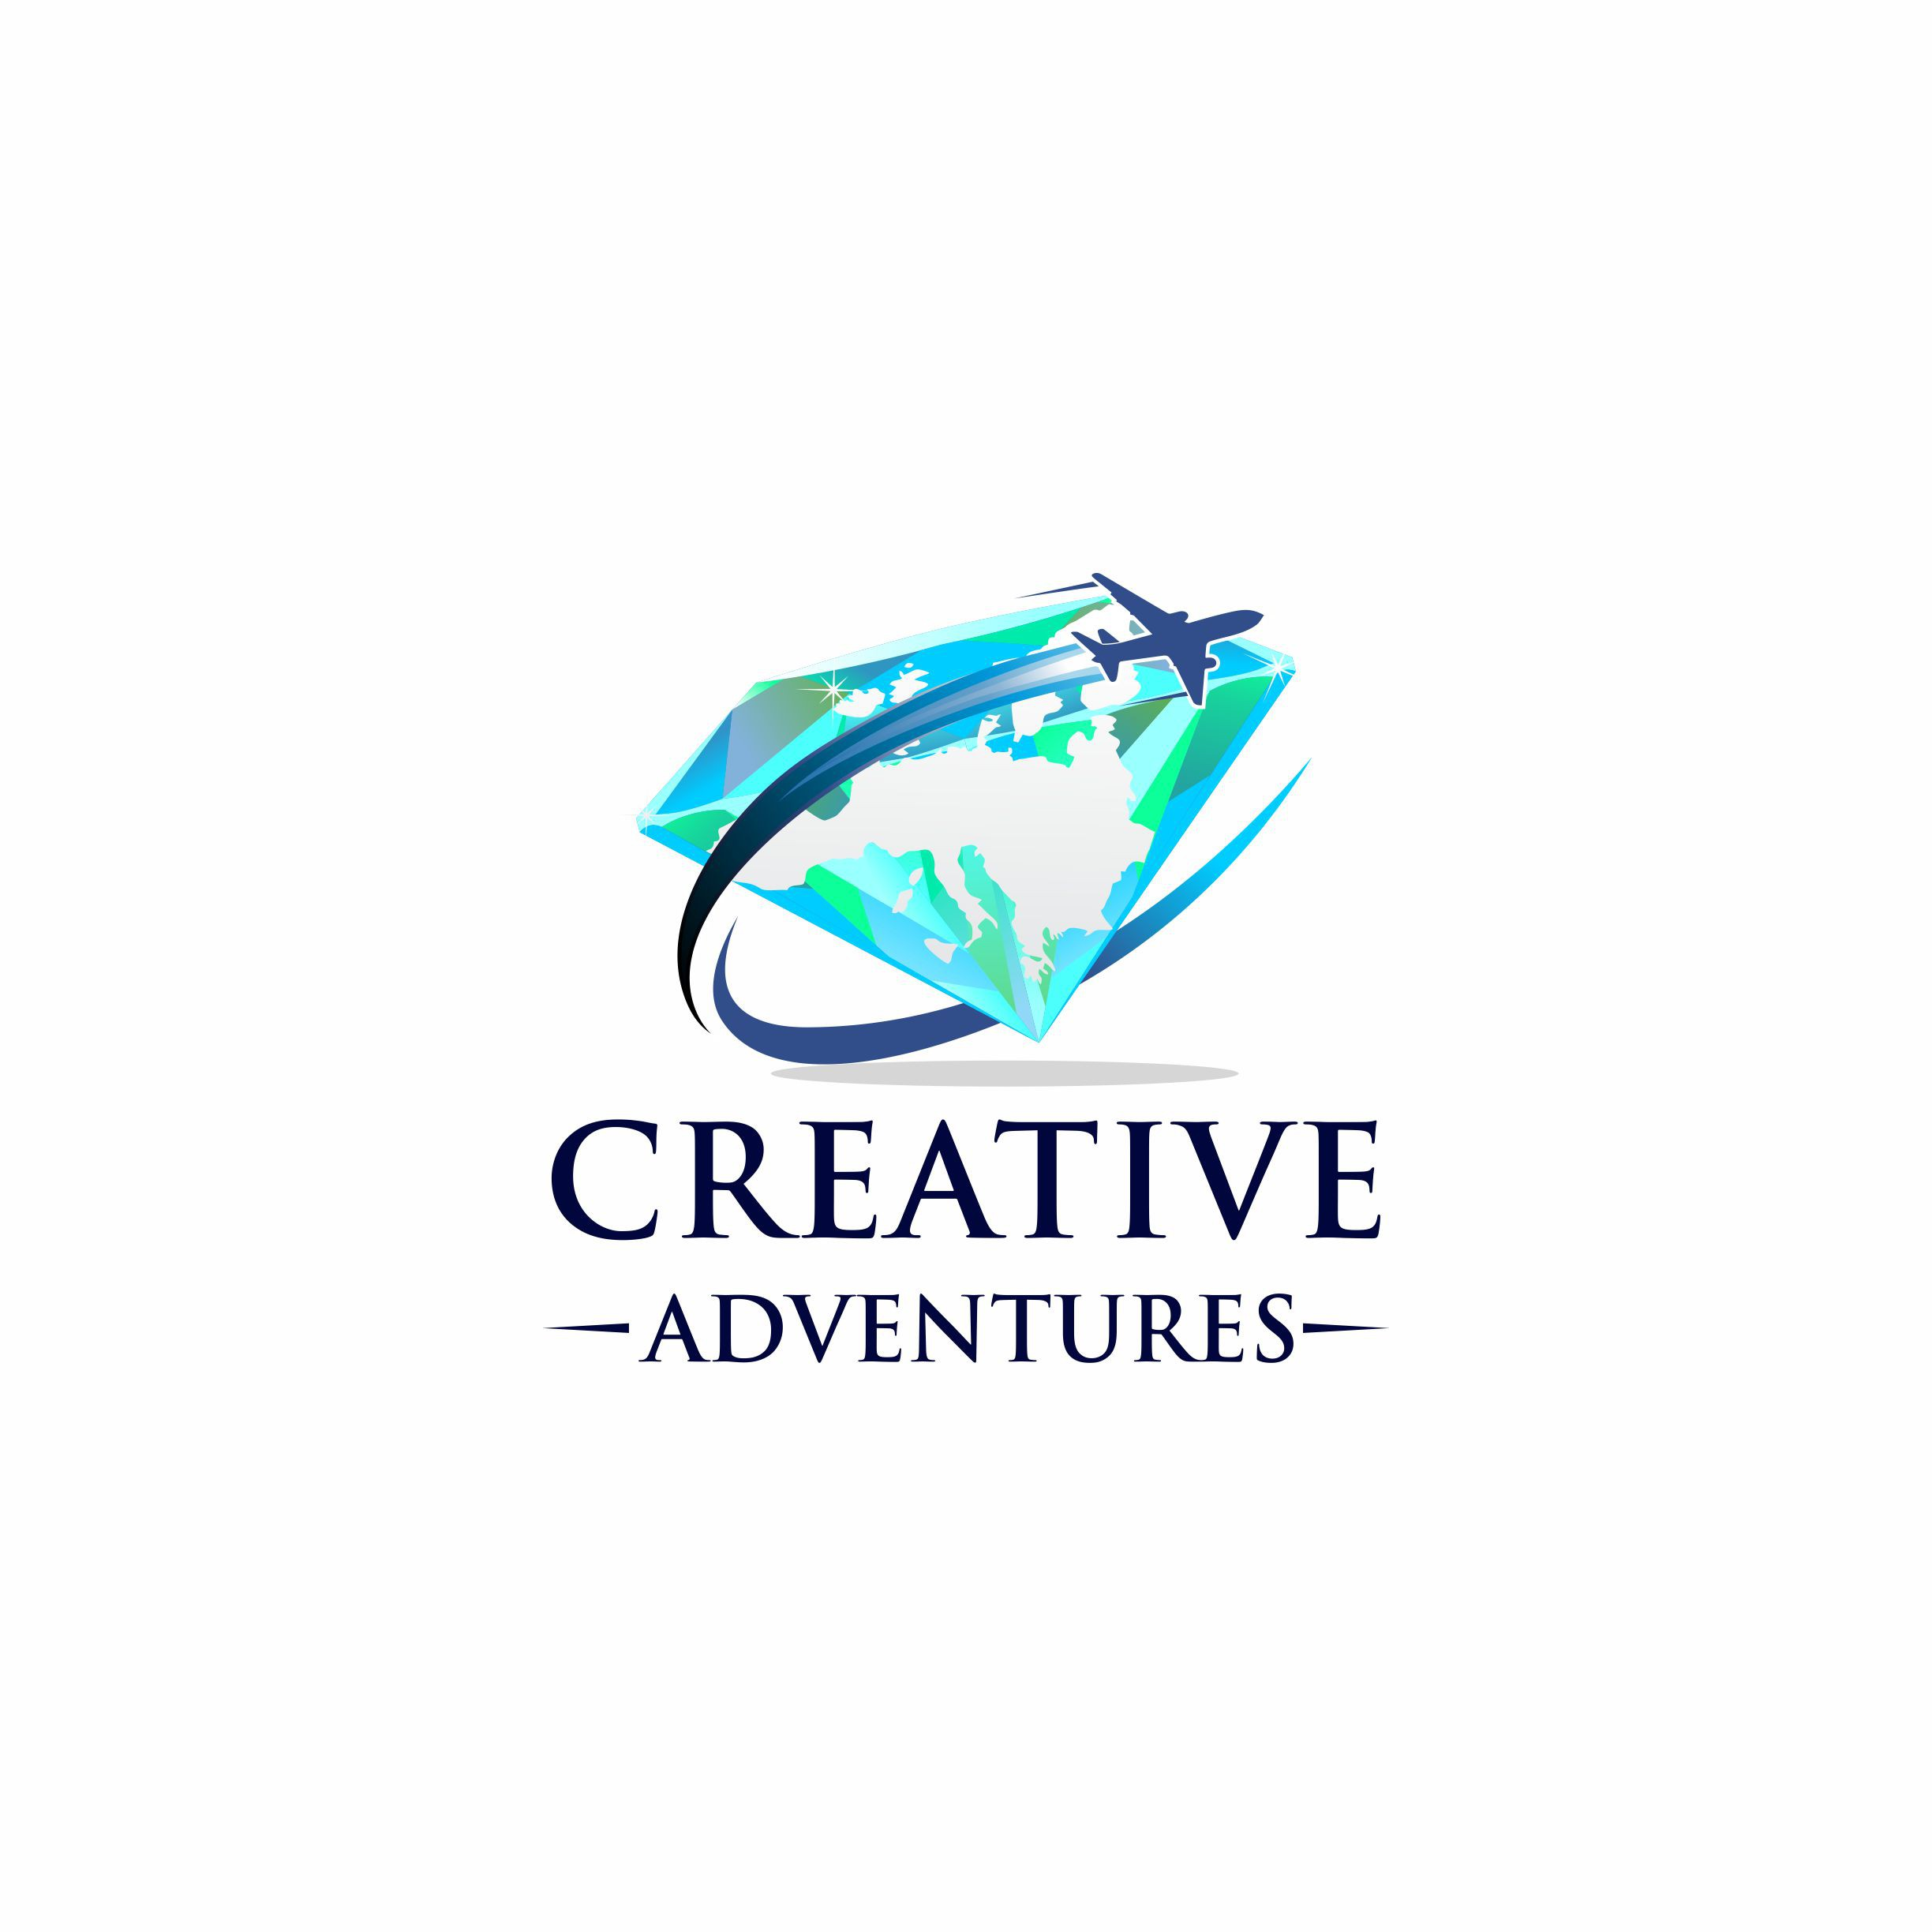 Design a logo shaping the world into a bead for Creative Adventures Tours